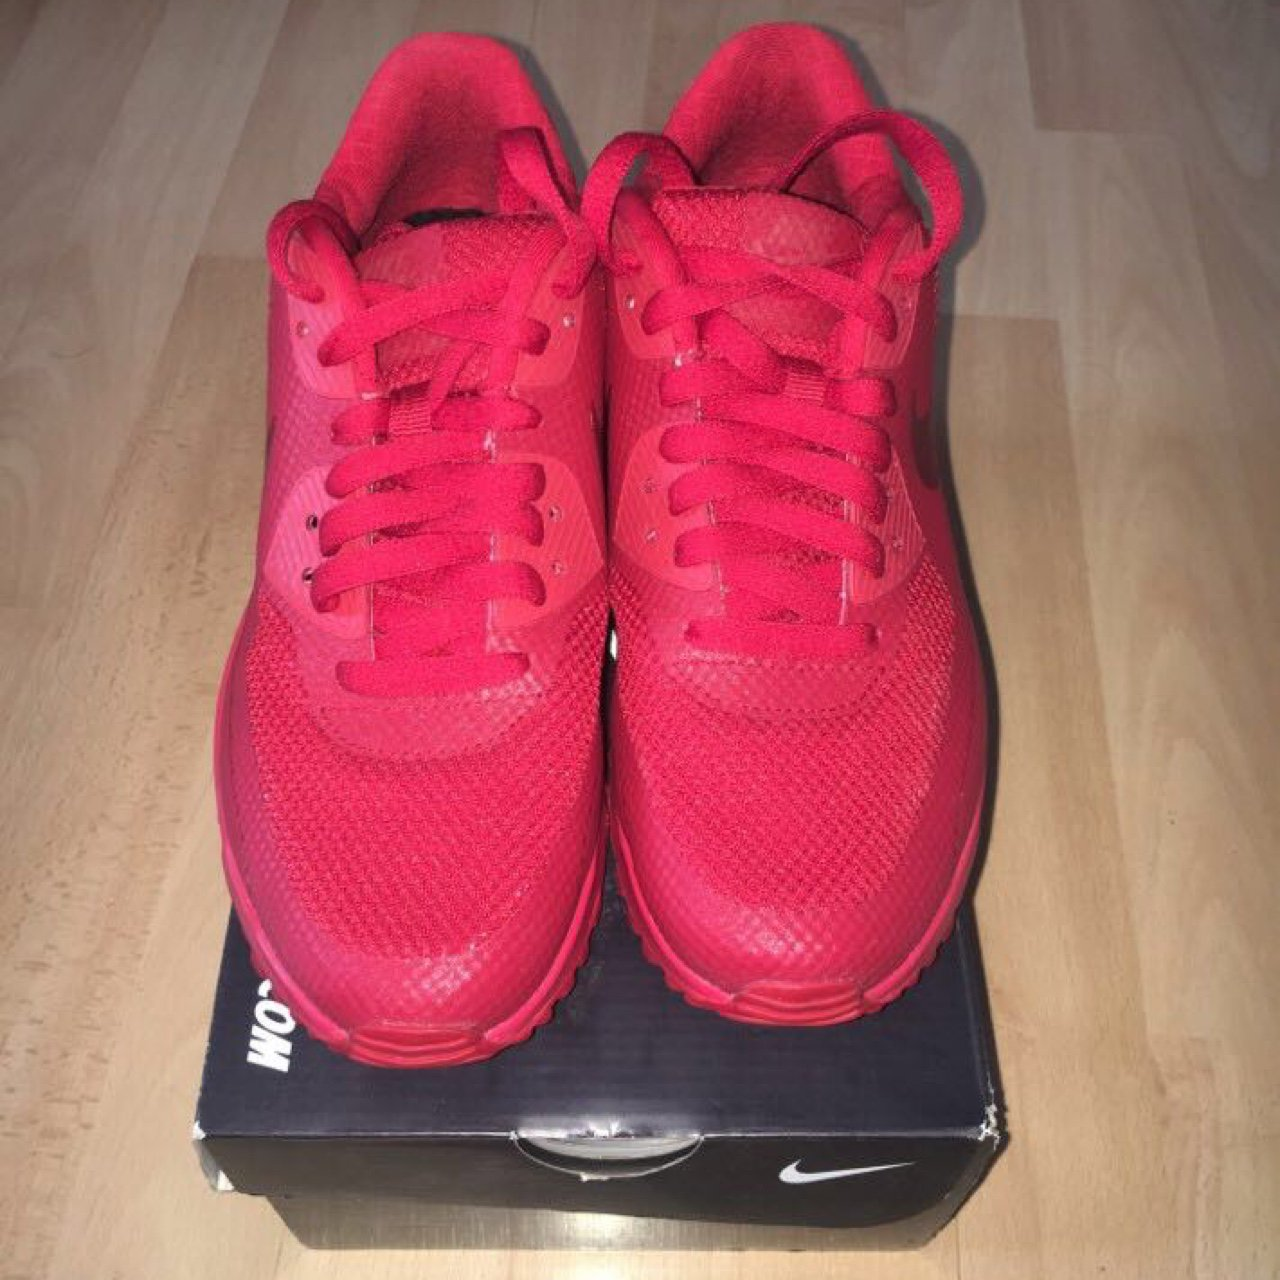 d47a88242d4d Brand new Nike Air Max 90 Hyperfuse RED trainer sneaker size - Depop